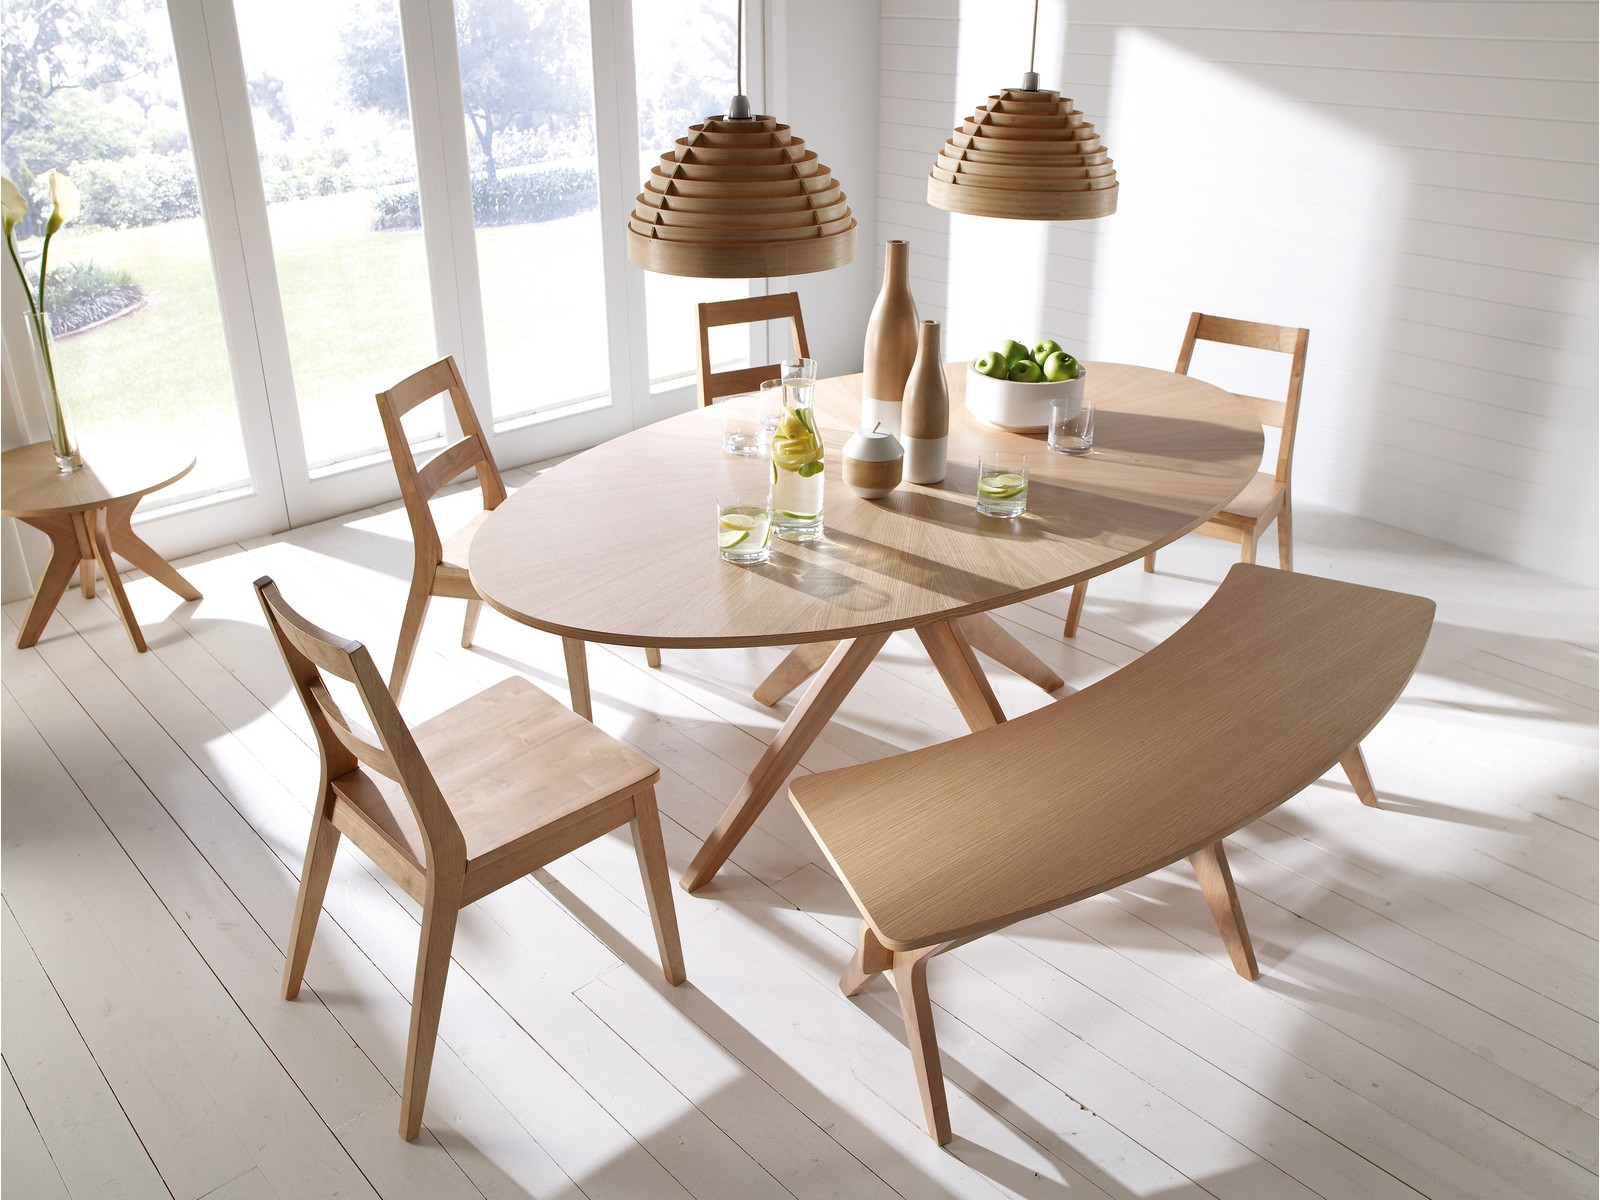 Malmo scandinavian style dining furniture tables chairs for Dining room table with bench